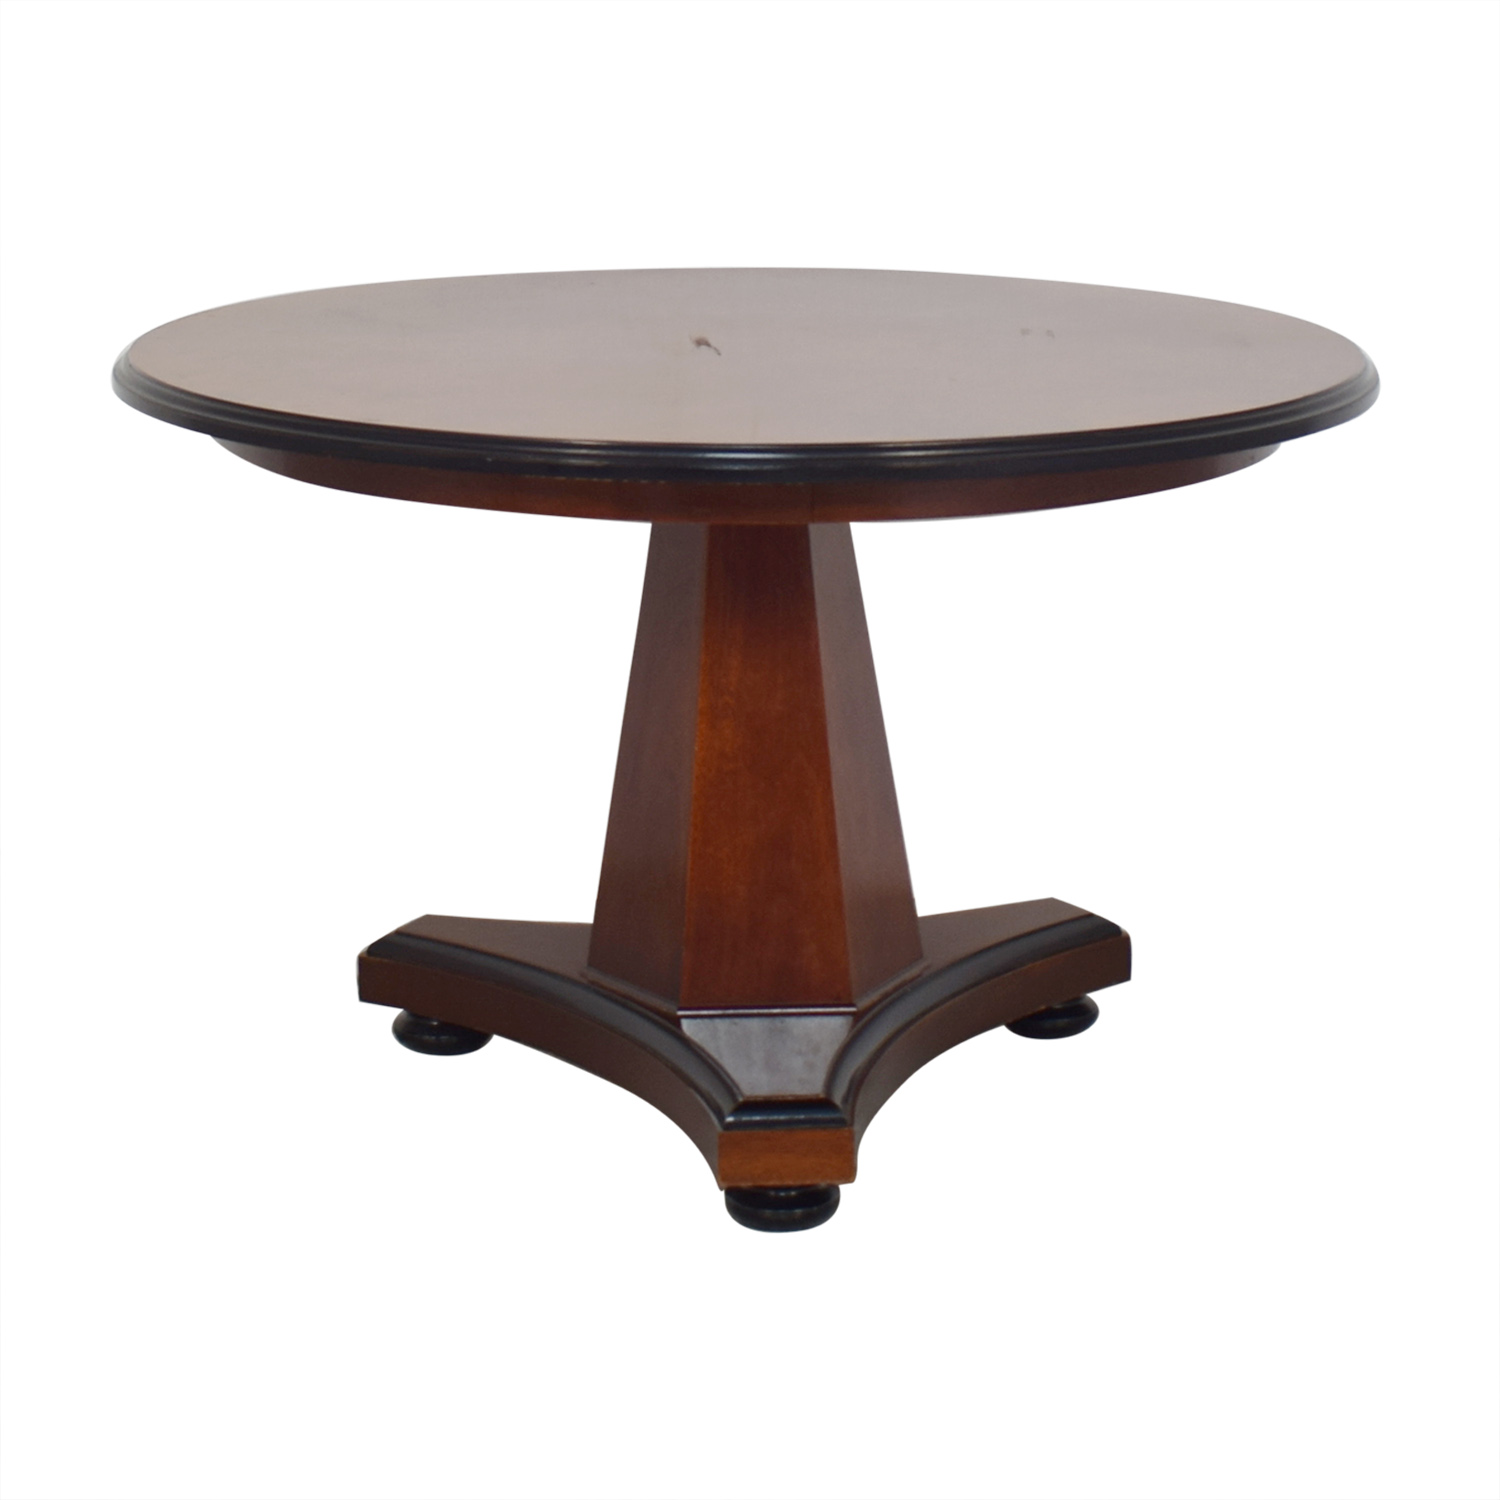 Mark Hampton Round Dining Table second hand